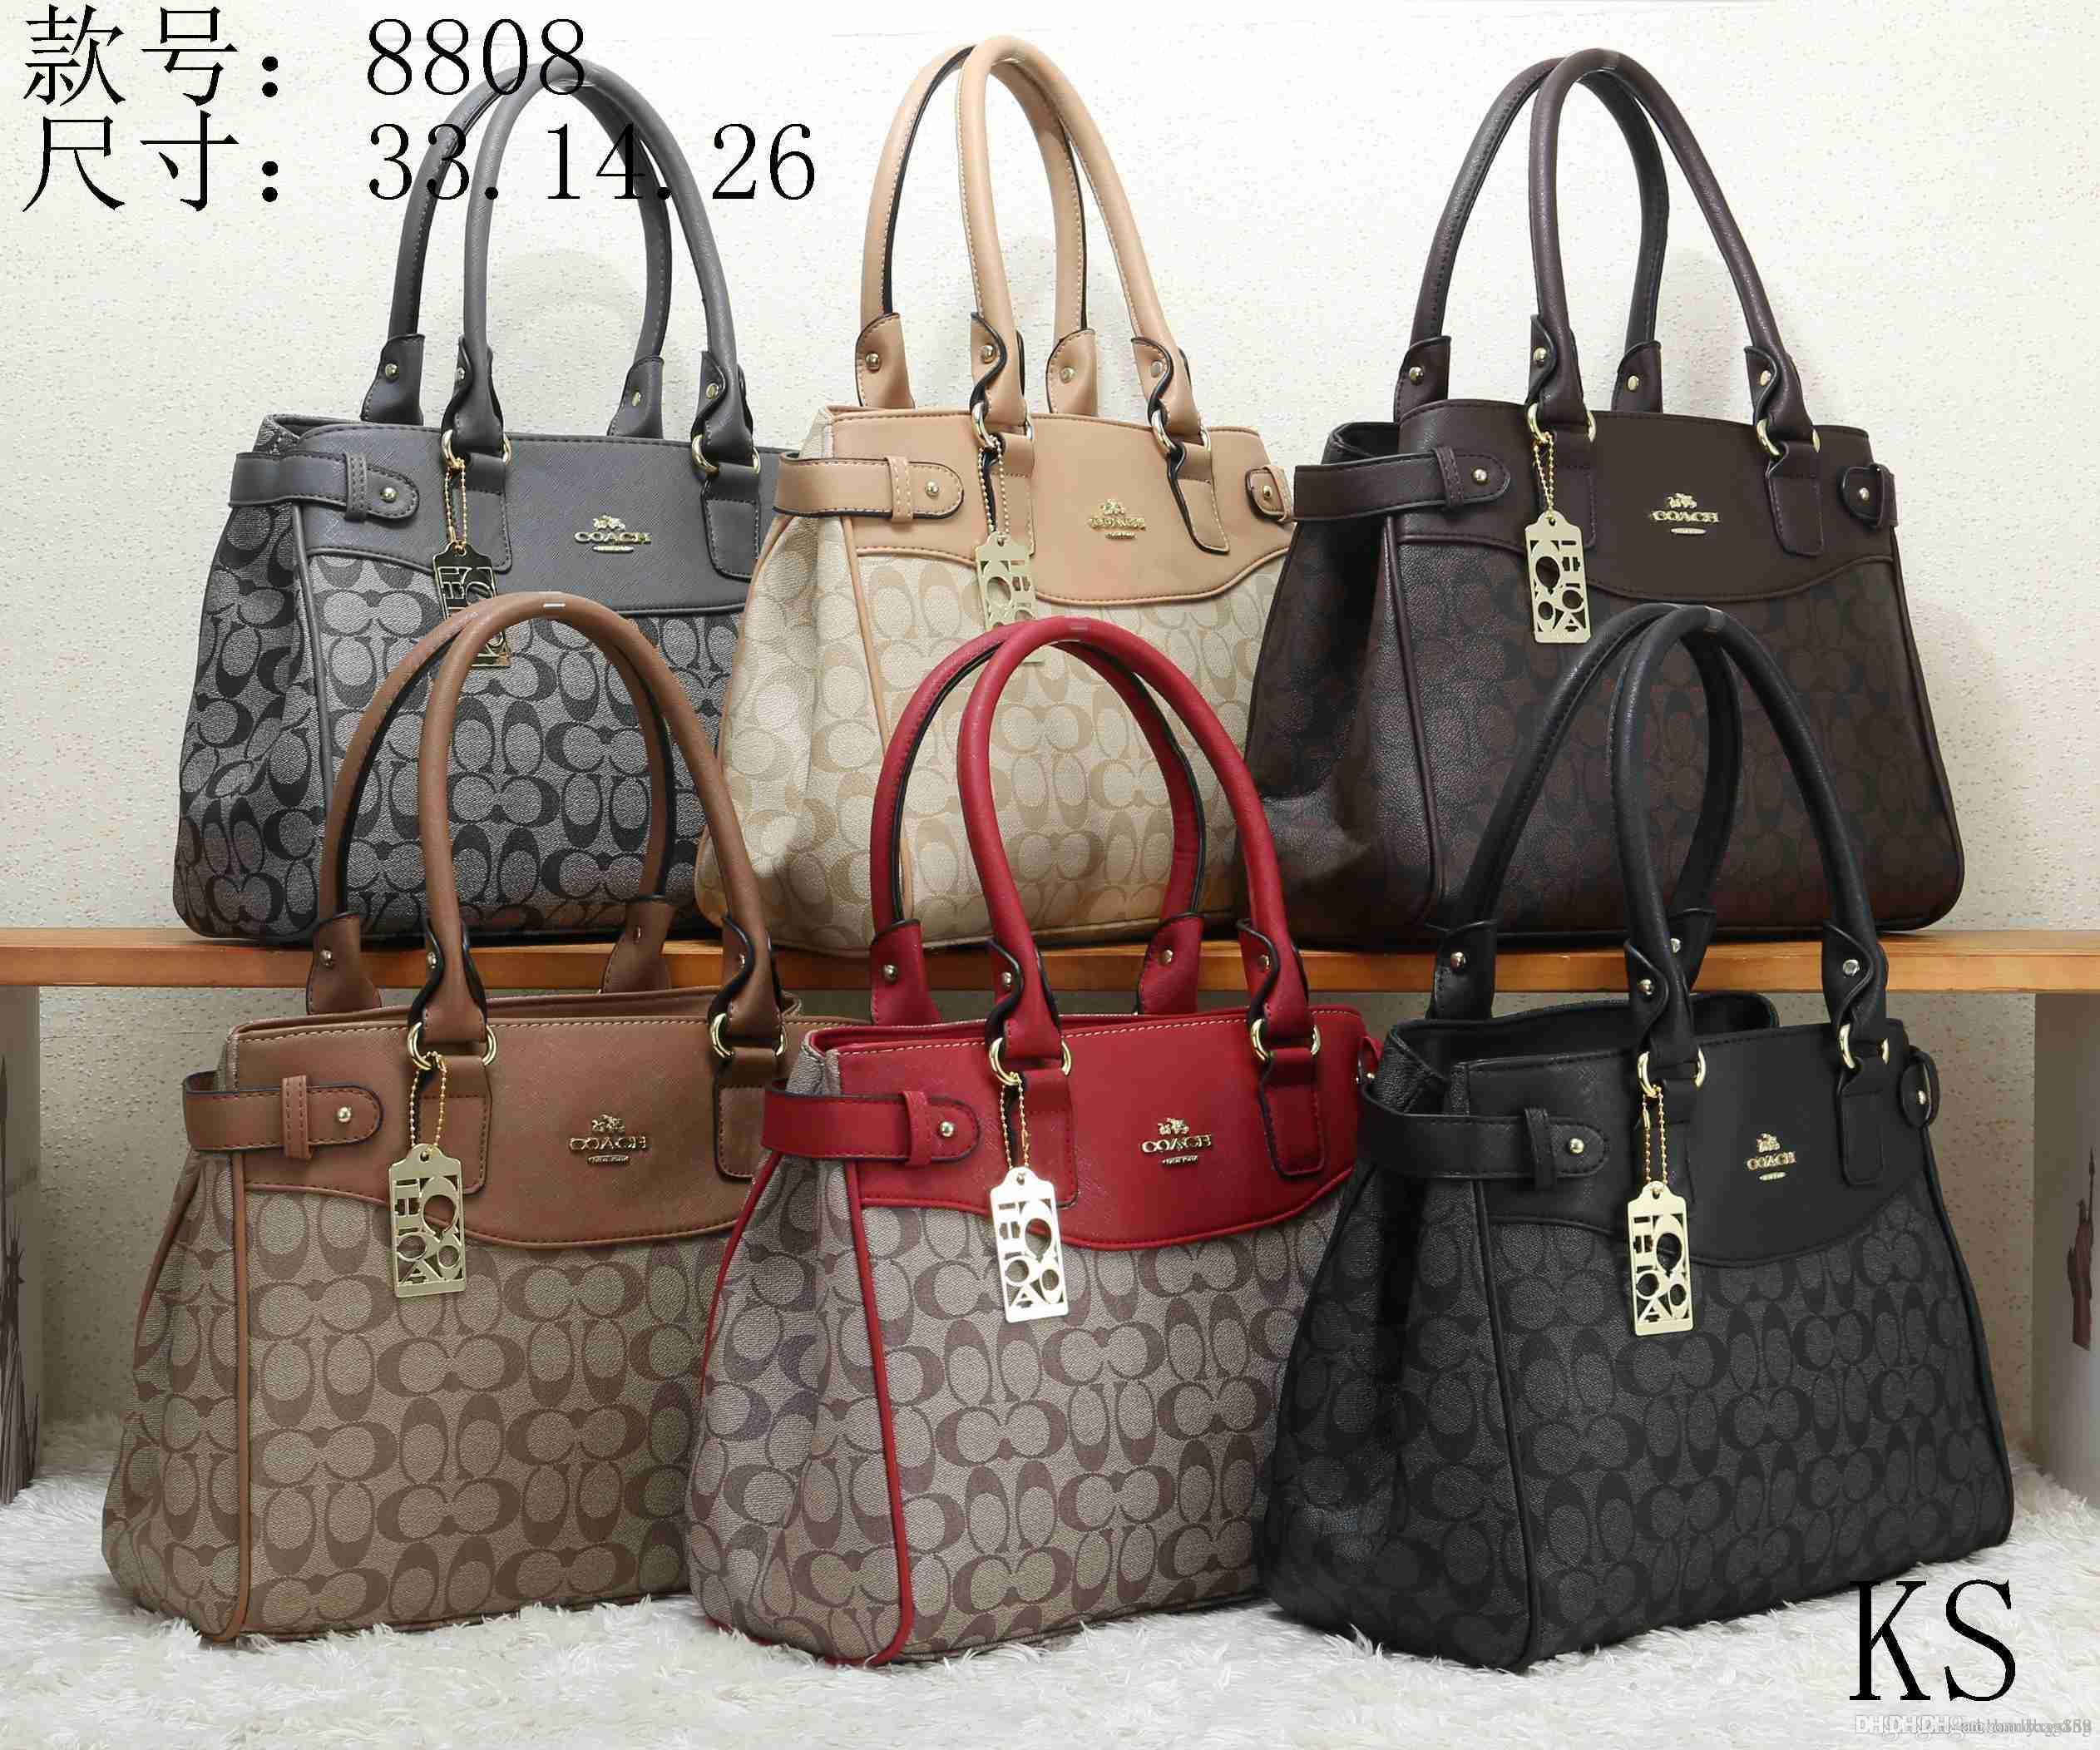 4853e500d85f 2019 MK 8808 KS NEW Styles Fashion Bags Ladies Handbags Designer Bags Women  Tote Bag Luxury Brands Bags Single Shoulder Bag From Yxyxing, $31.16 |  DHgate.